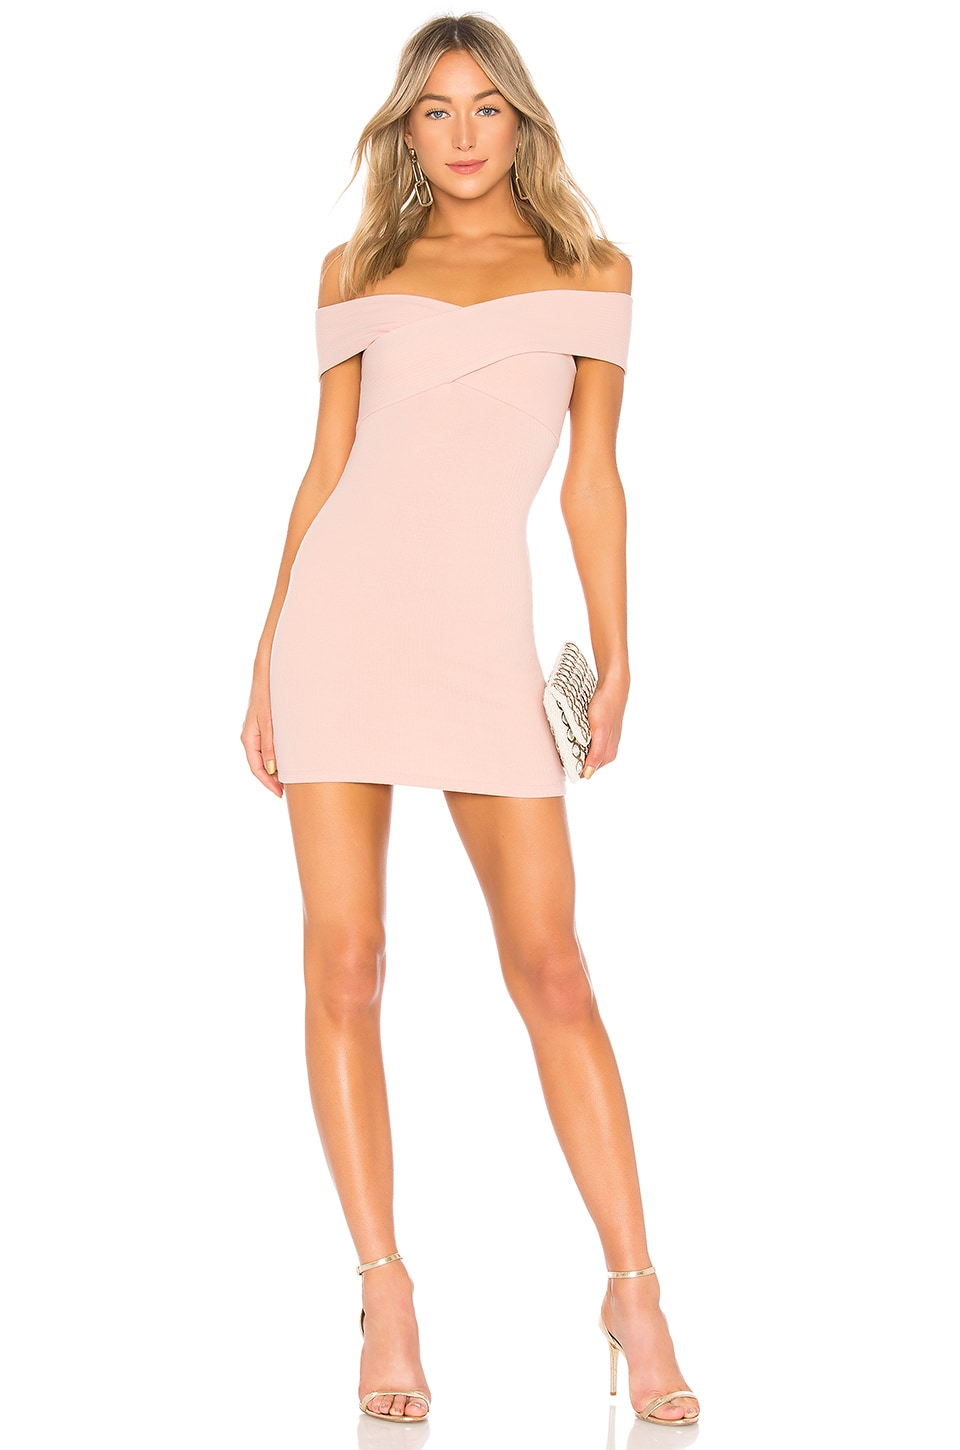 Privacy Please Bandini Mini Dress in Baby Pink